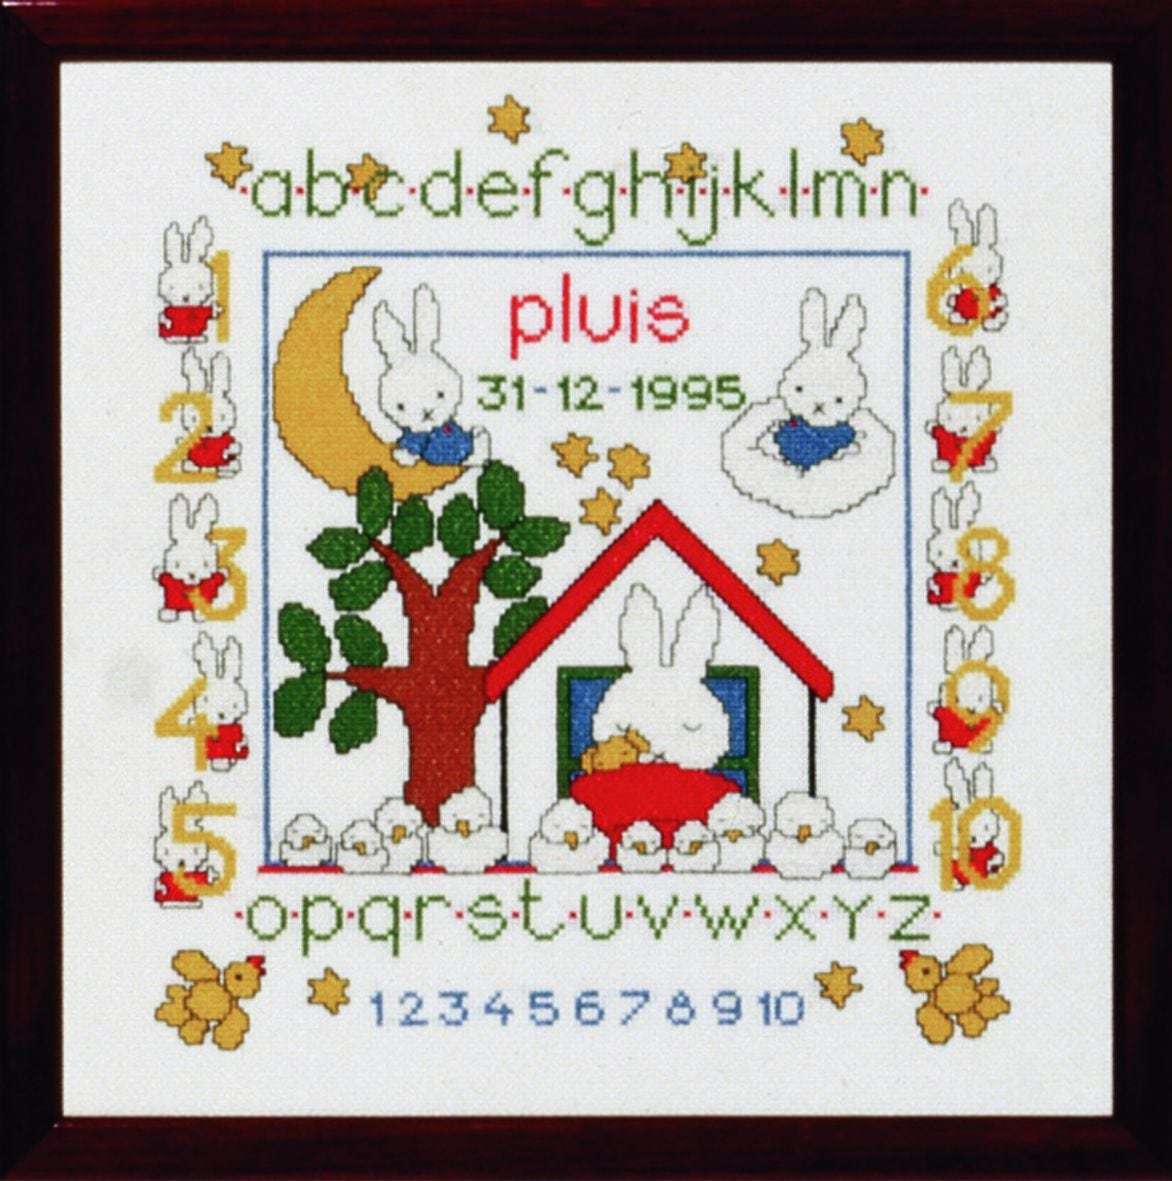 embroidery kit birthday sampler pluis dick bruna